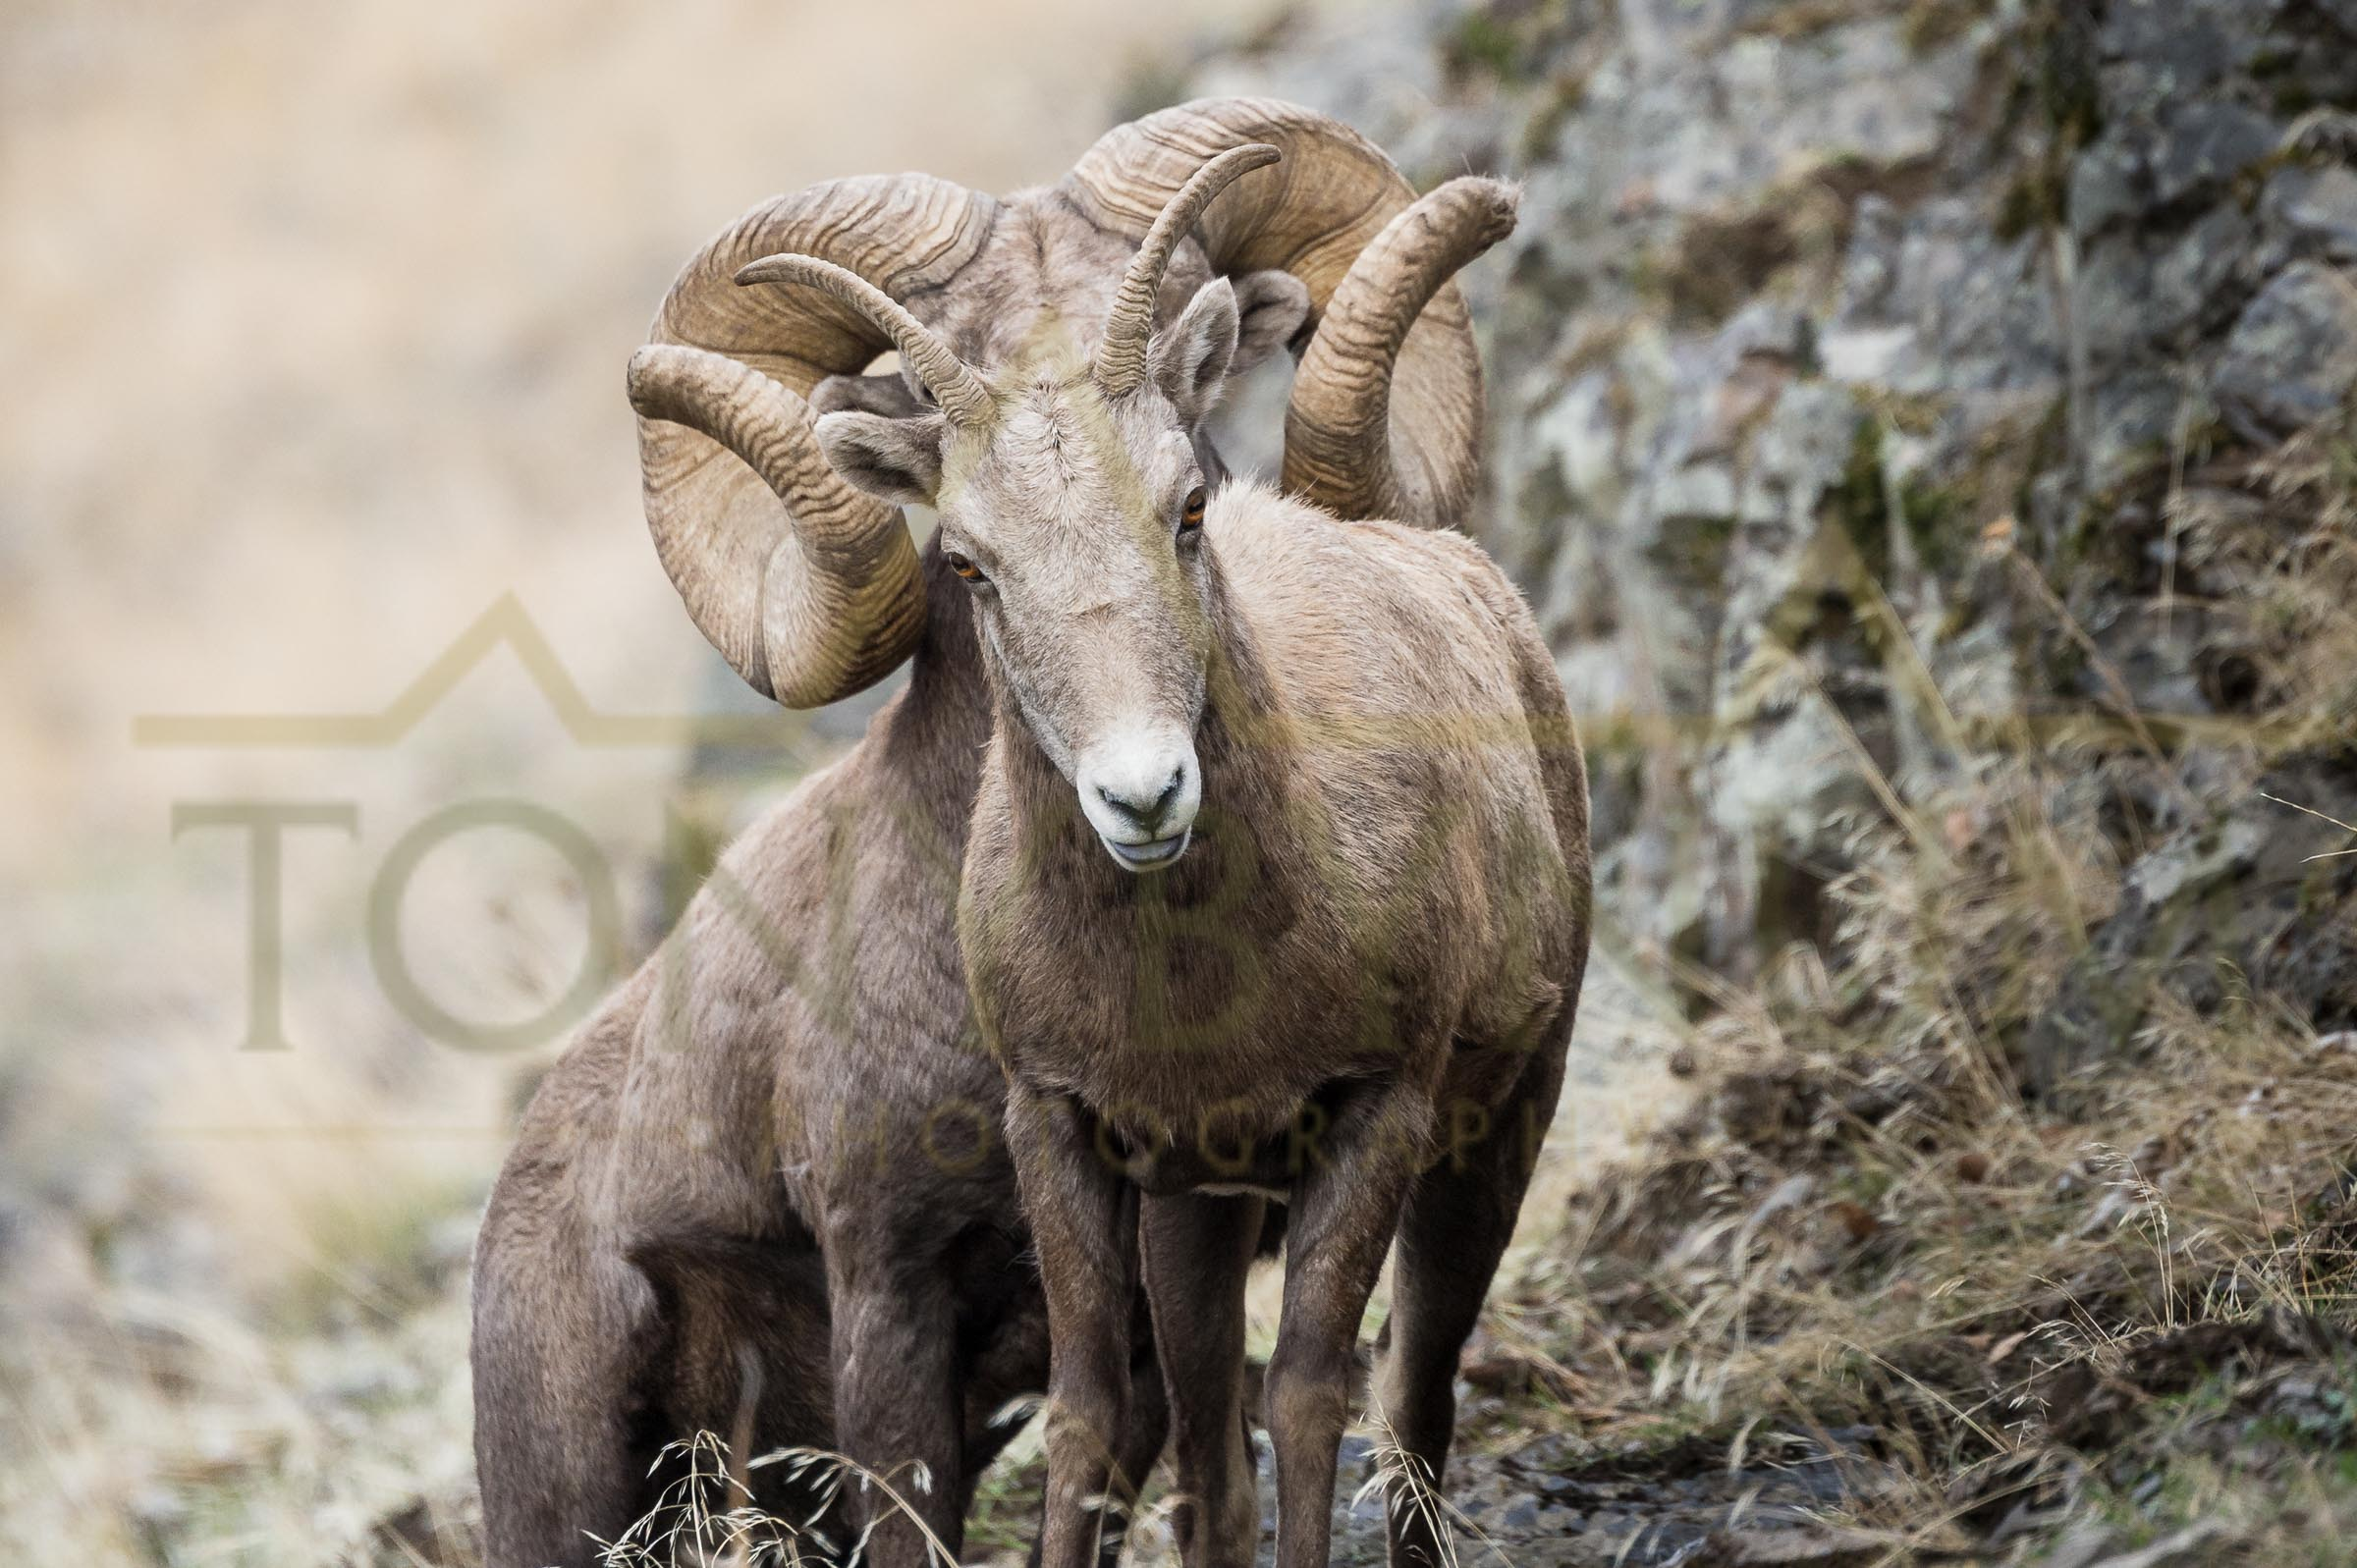 A striking image of the world record bighorn ram standing directly, and inline with a ewe. The ram later bred this ewe passing on his incredible genes. ©tonybynum.com